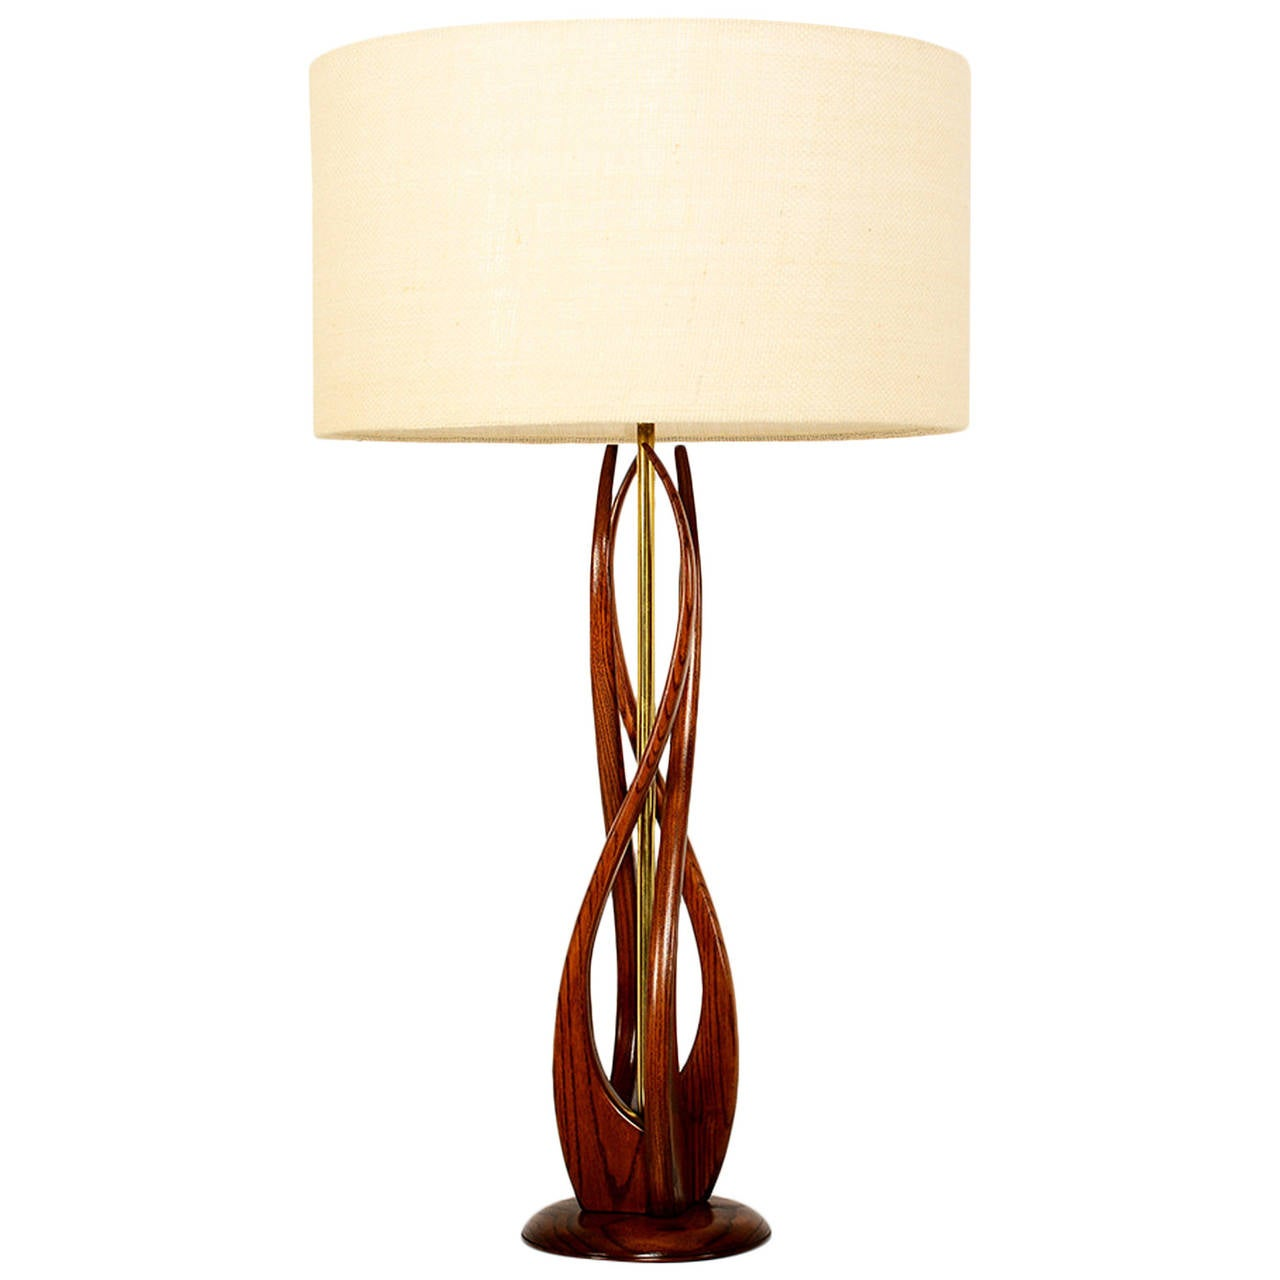 this mid century modern table lamp is no longer available. Black Bedroom Furniture Sets. Home Design Ideas